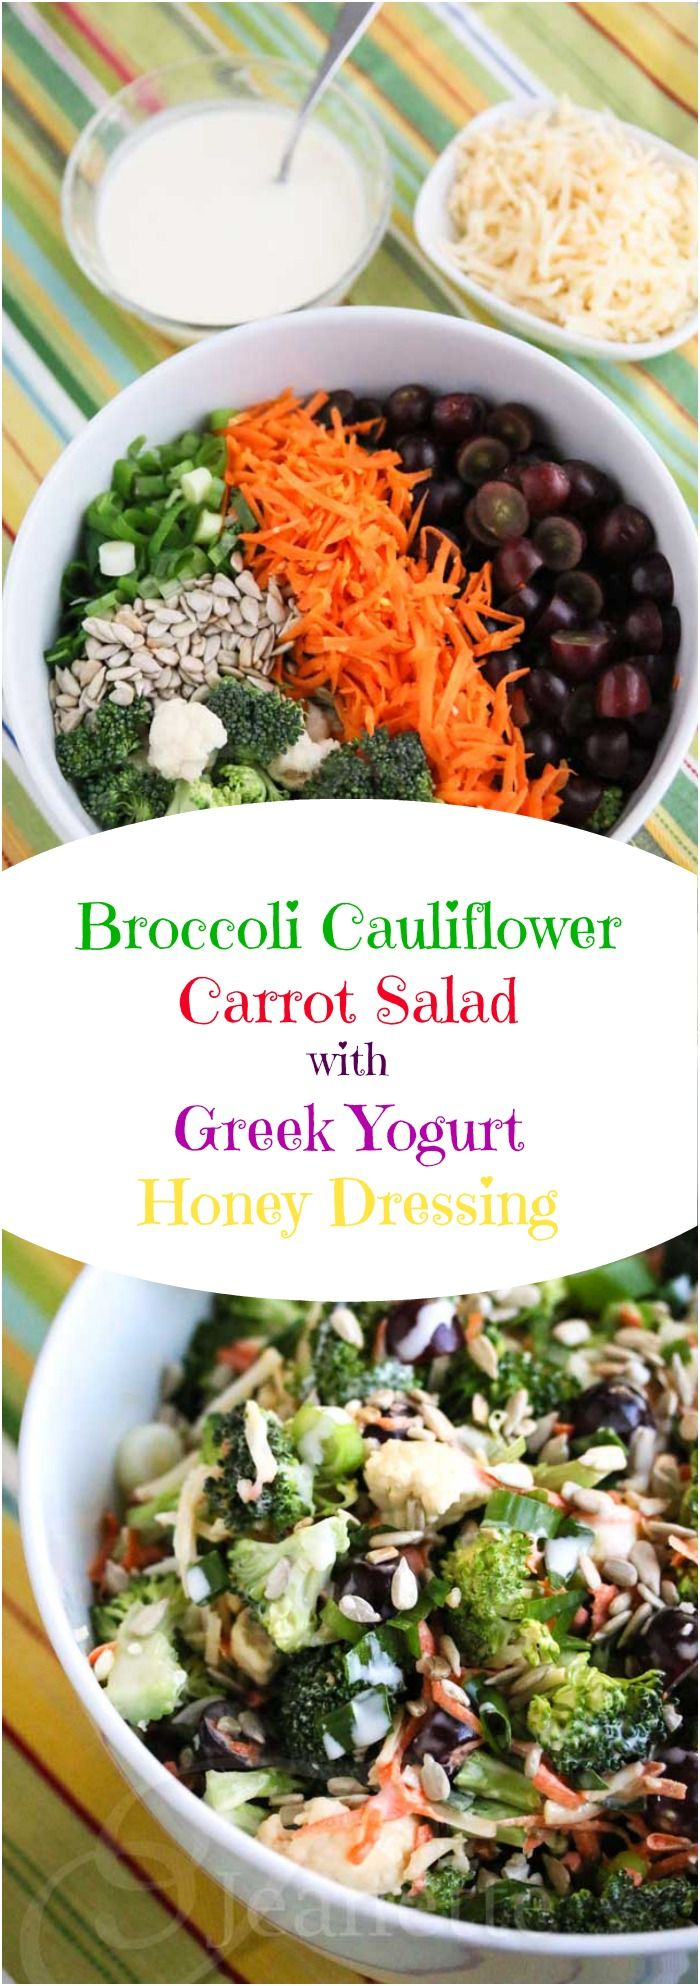 Broccoli Cauliflower Carrot Salad with Greek Yogurt Honey Dressing © Jeanette's Healthy Living #Easter #Spring #glutenfree #healthy #recipe